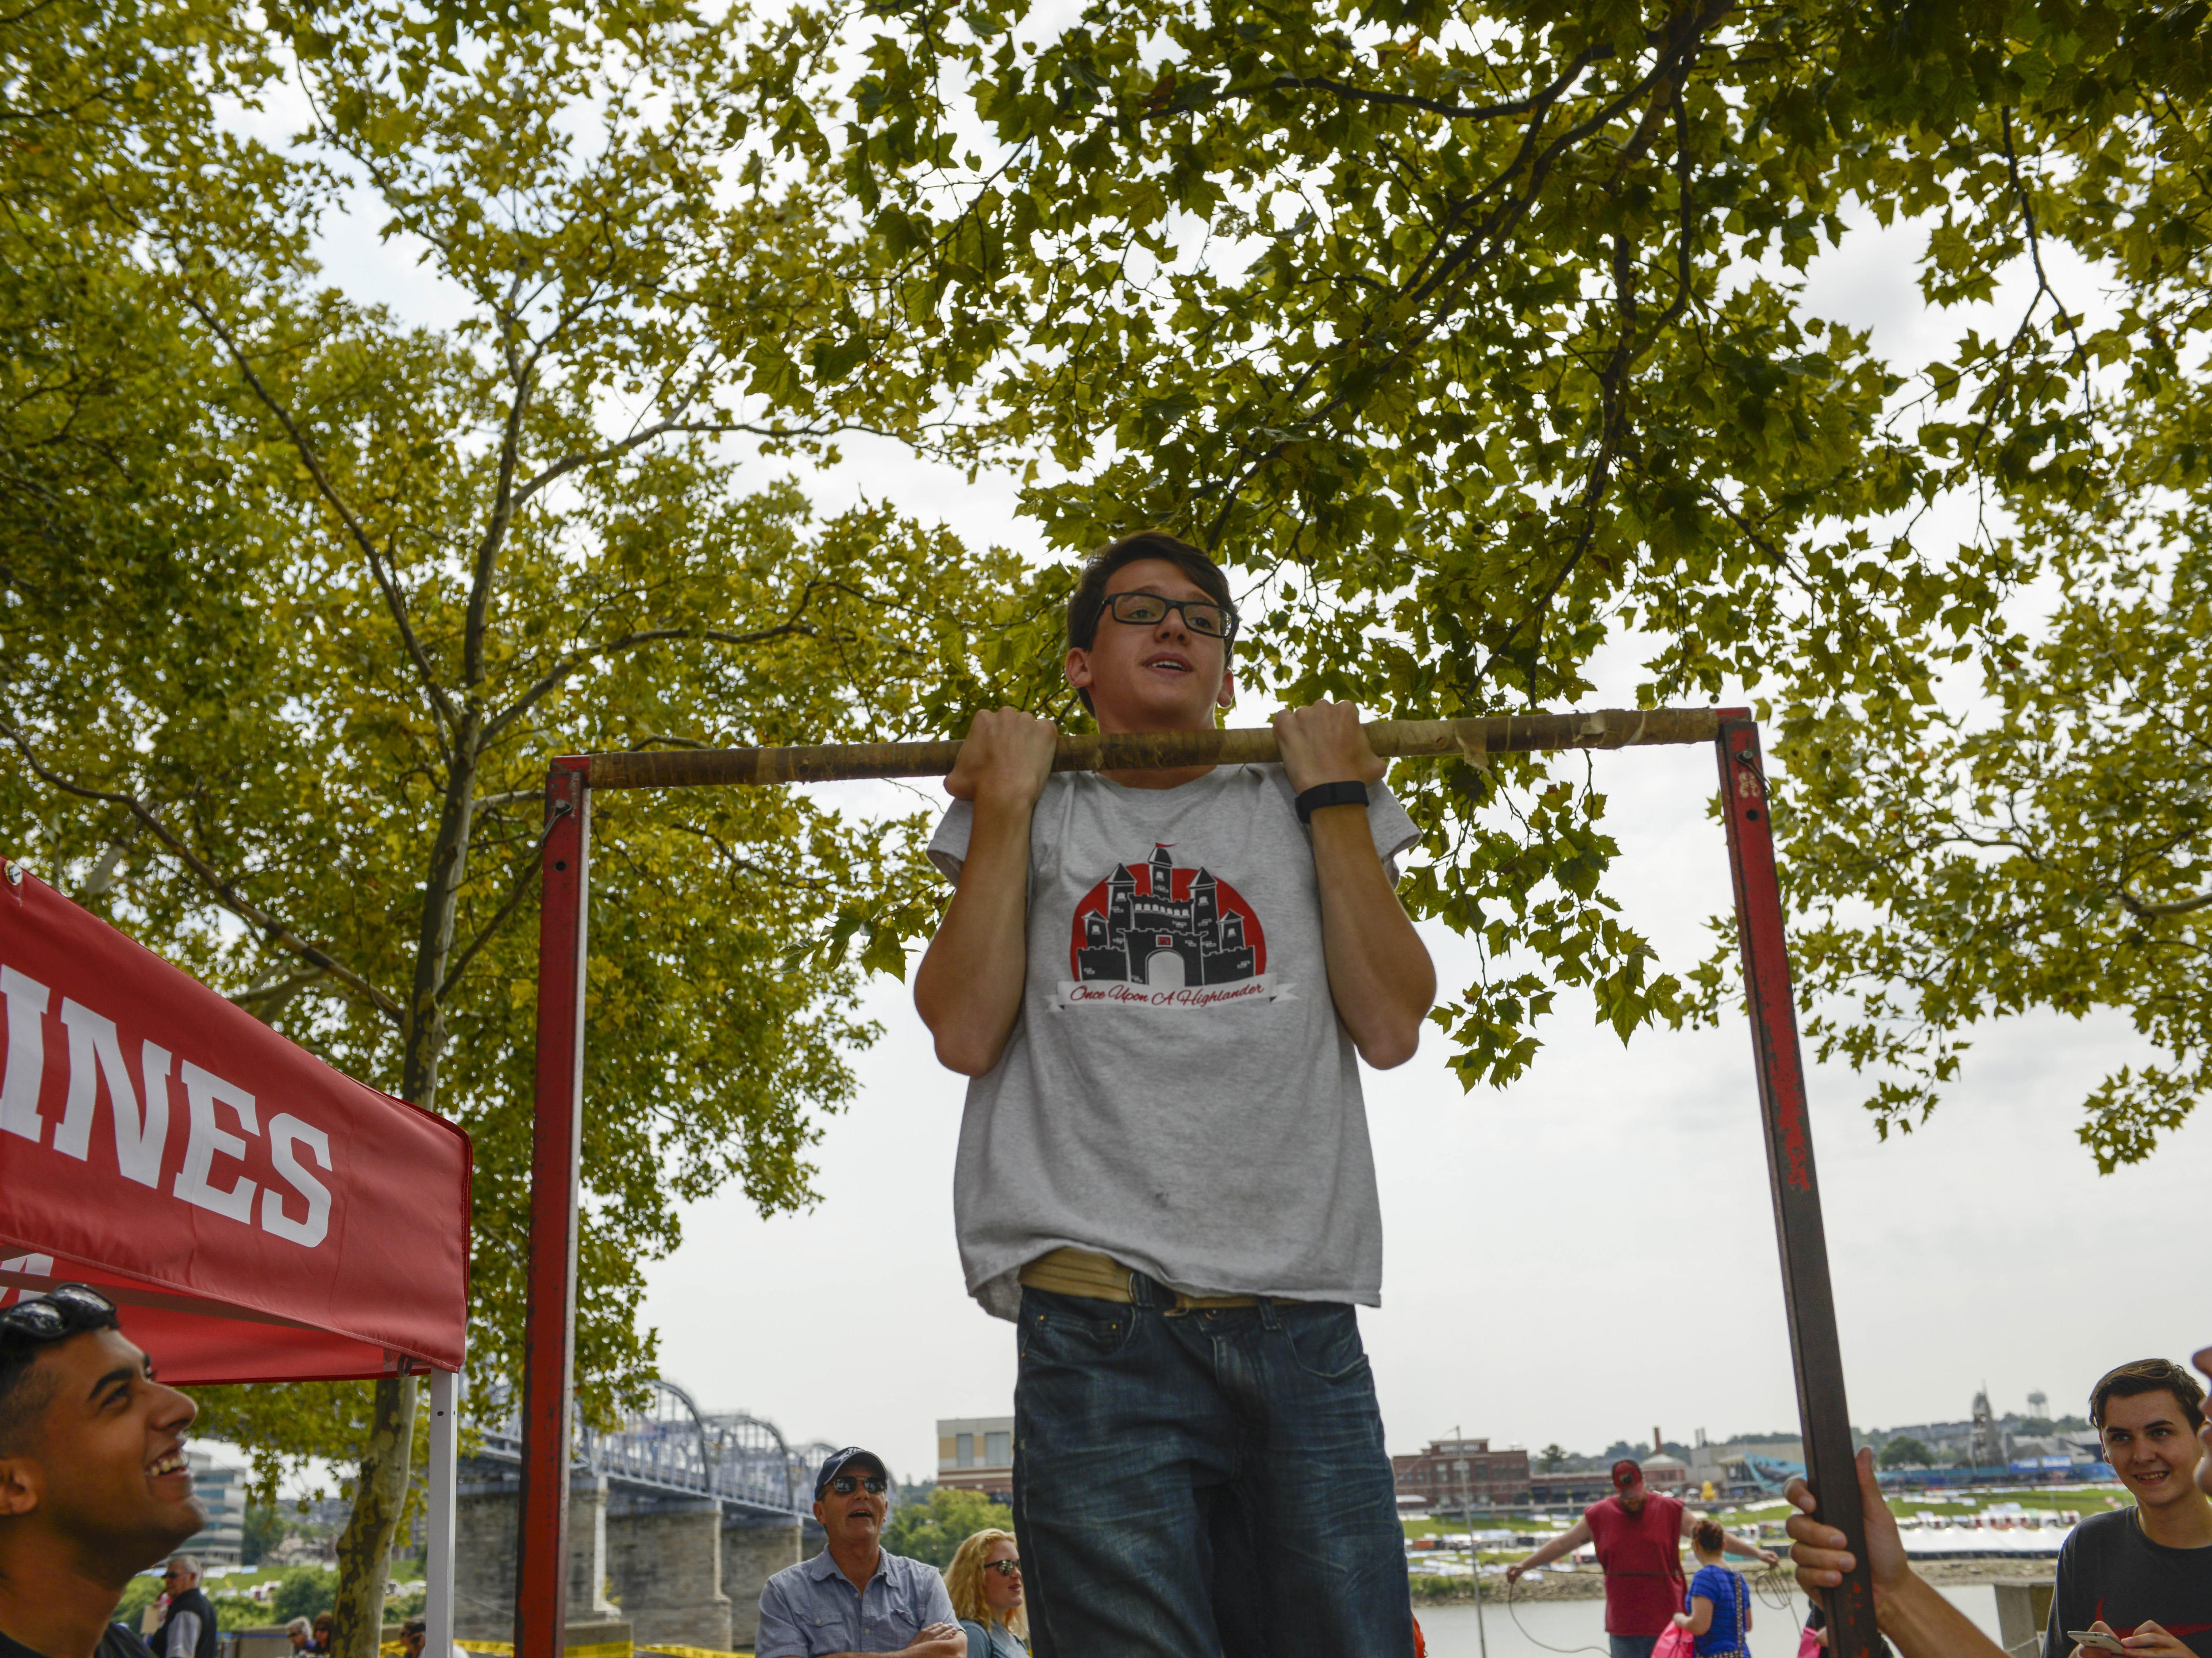 photos by Joe Simon/for the Enquirer Carter Loewenstine shows off his strength at the U.S. Marine Corps chin-up bar at the 41st annual Riverfest. The 41st. annual W&S WEBN Fireworks was held Sunday,September 3,,2017 on the banks of the Ohio River. Carter Loewendtine shows off his strength at the USMC chin up bar.